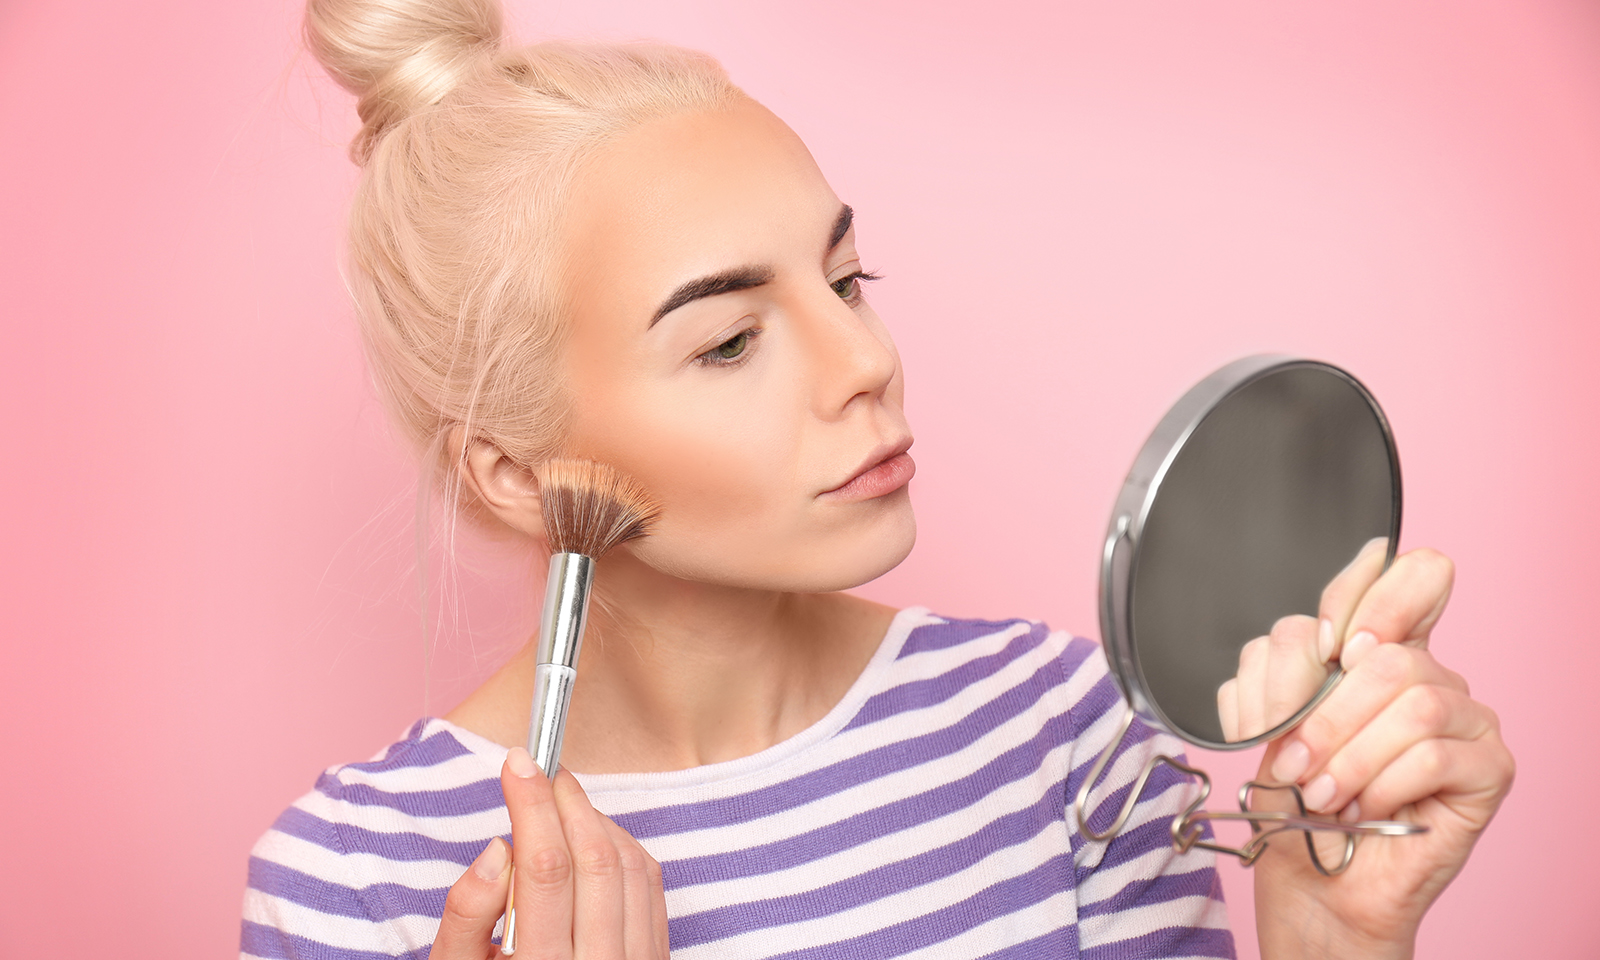 best-makeup-foundations-for-oily-skin-woman-applying-foundation-pink-background